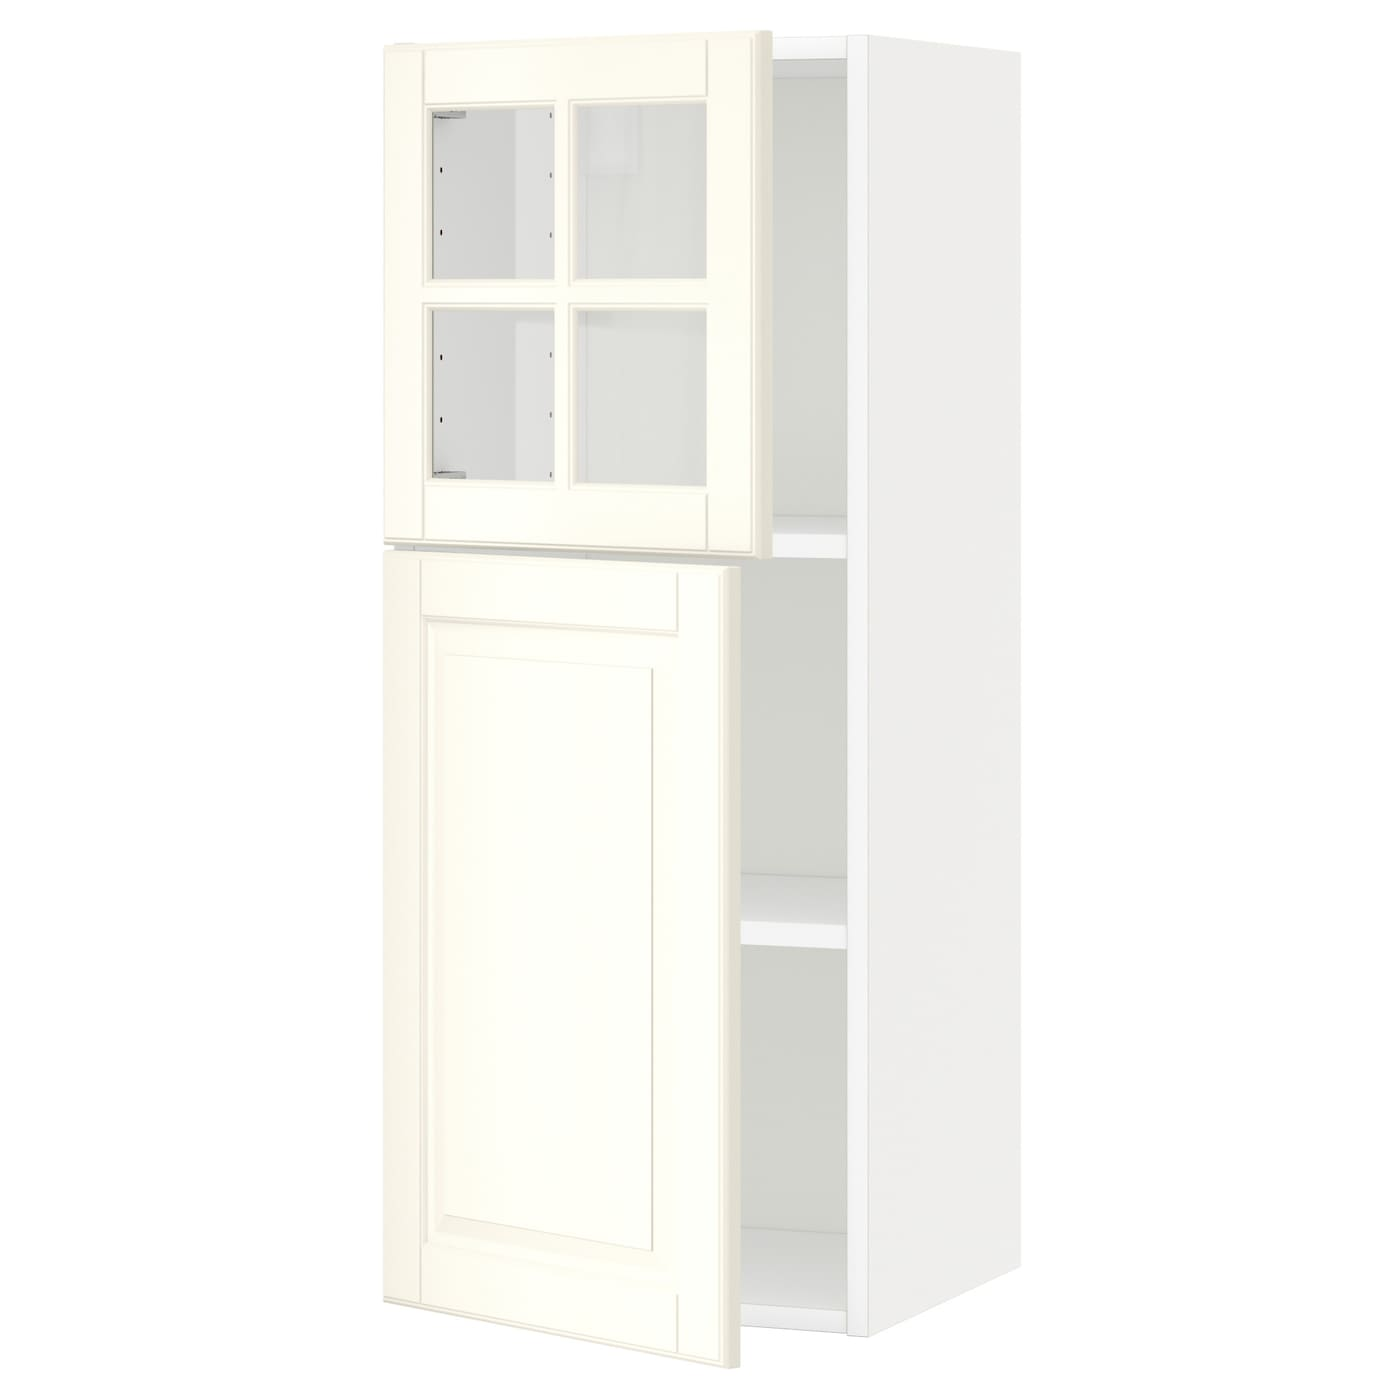 IKEA METOD Wall Cab W Shelves/door/glass Door Sturdy Frame Construction, 18